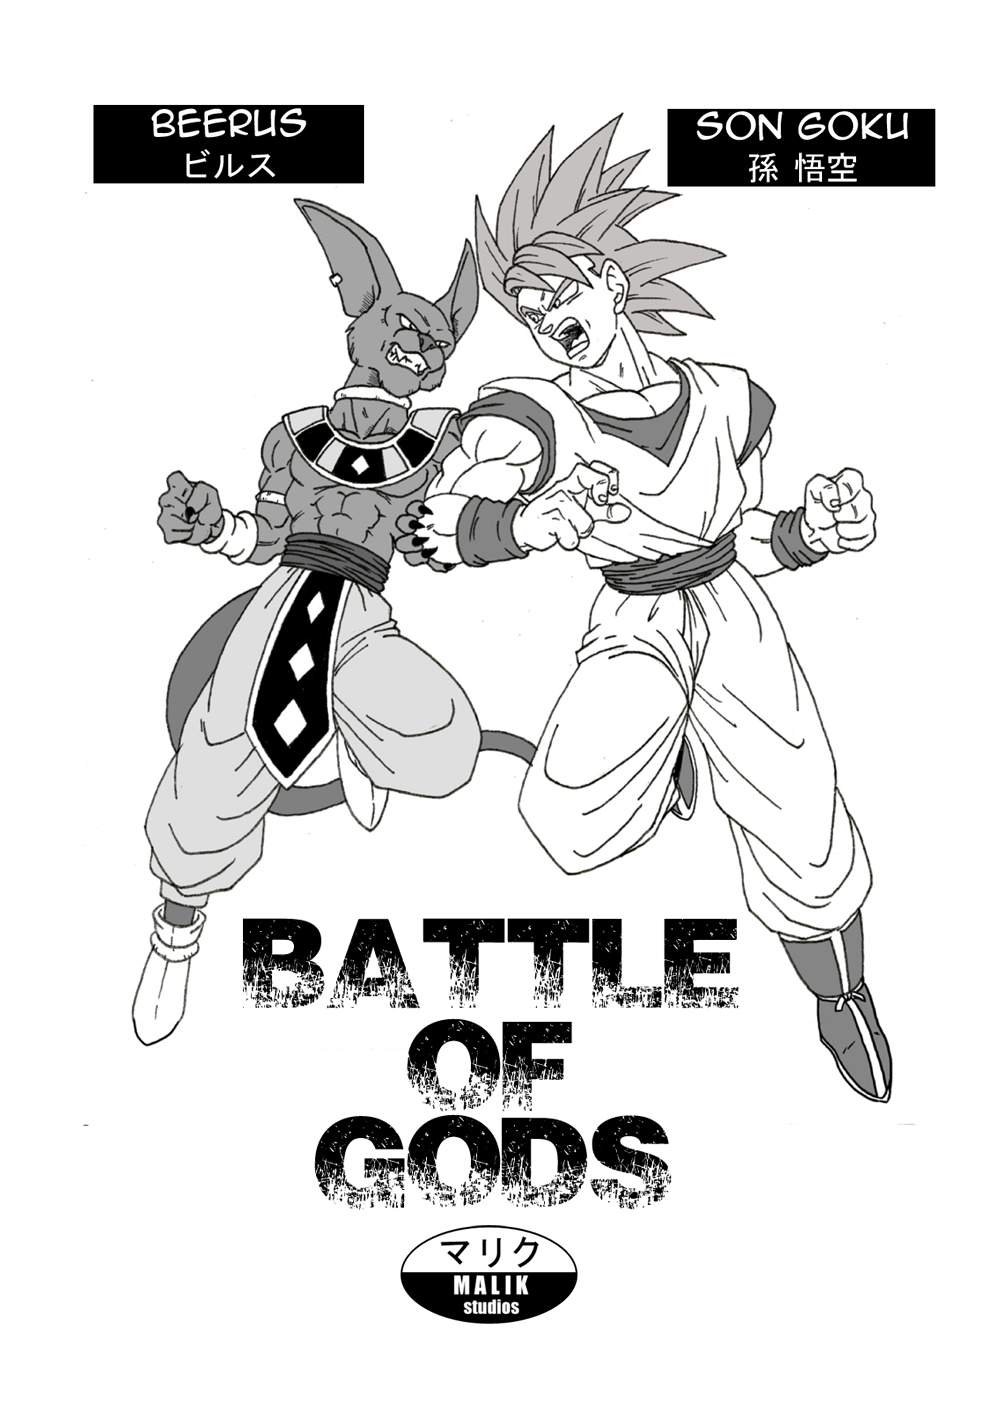 SSJ God Son Goku vs. Beerus by MalikStudios